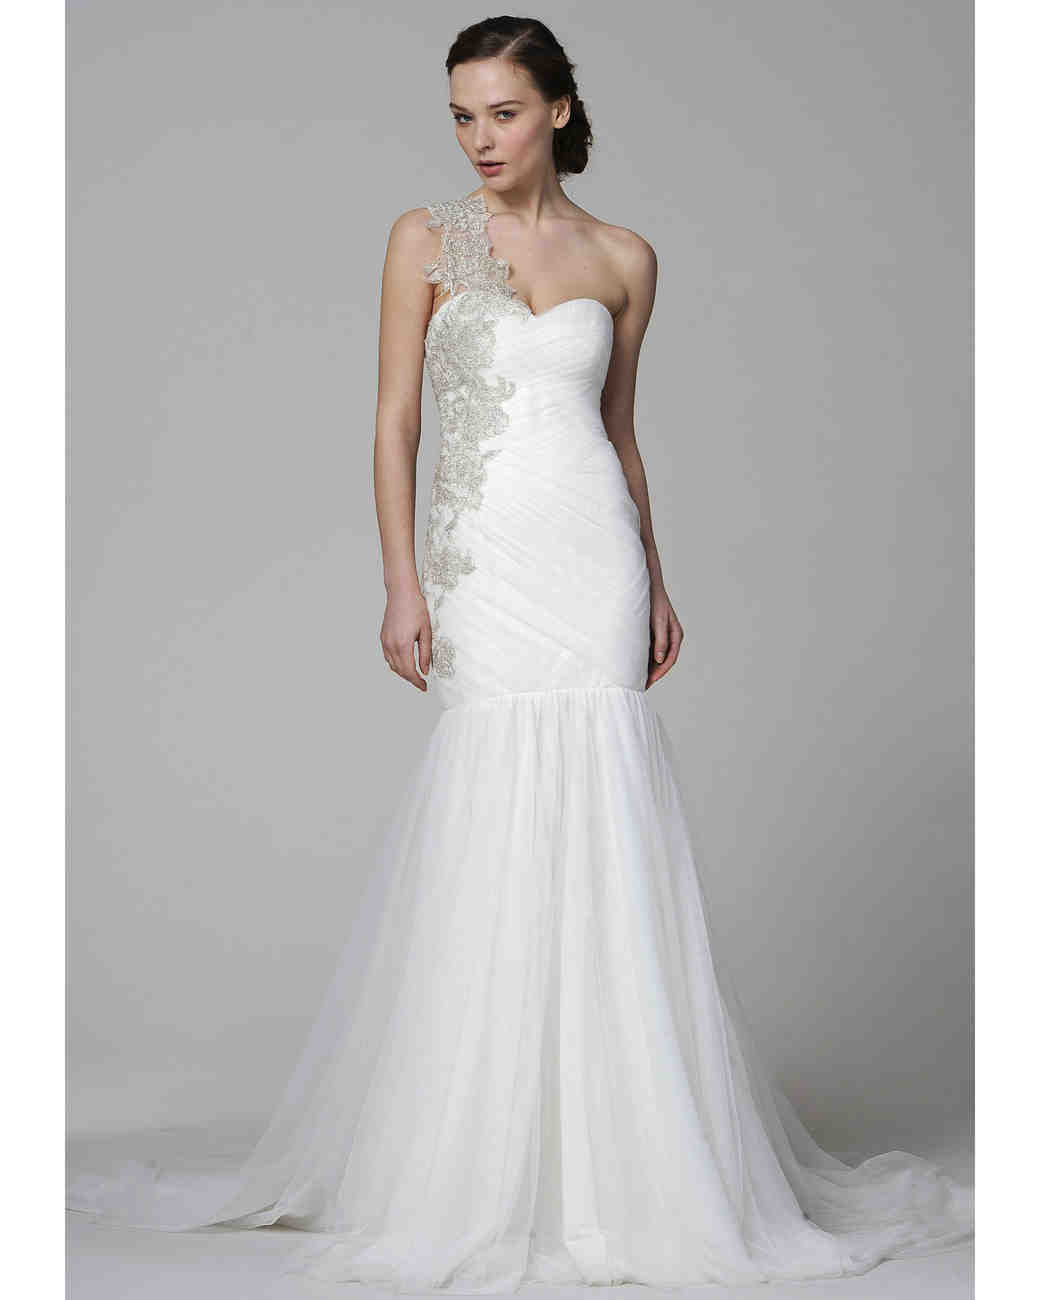 Wedding Gowns: One Shoulder Wedding Dresses, Spring 2013 Bridal Fashion